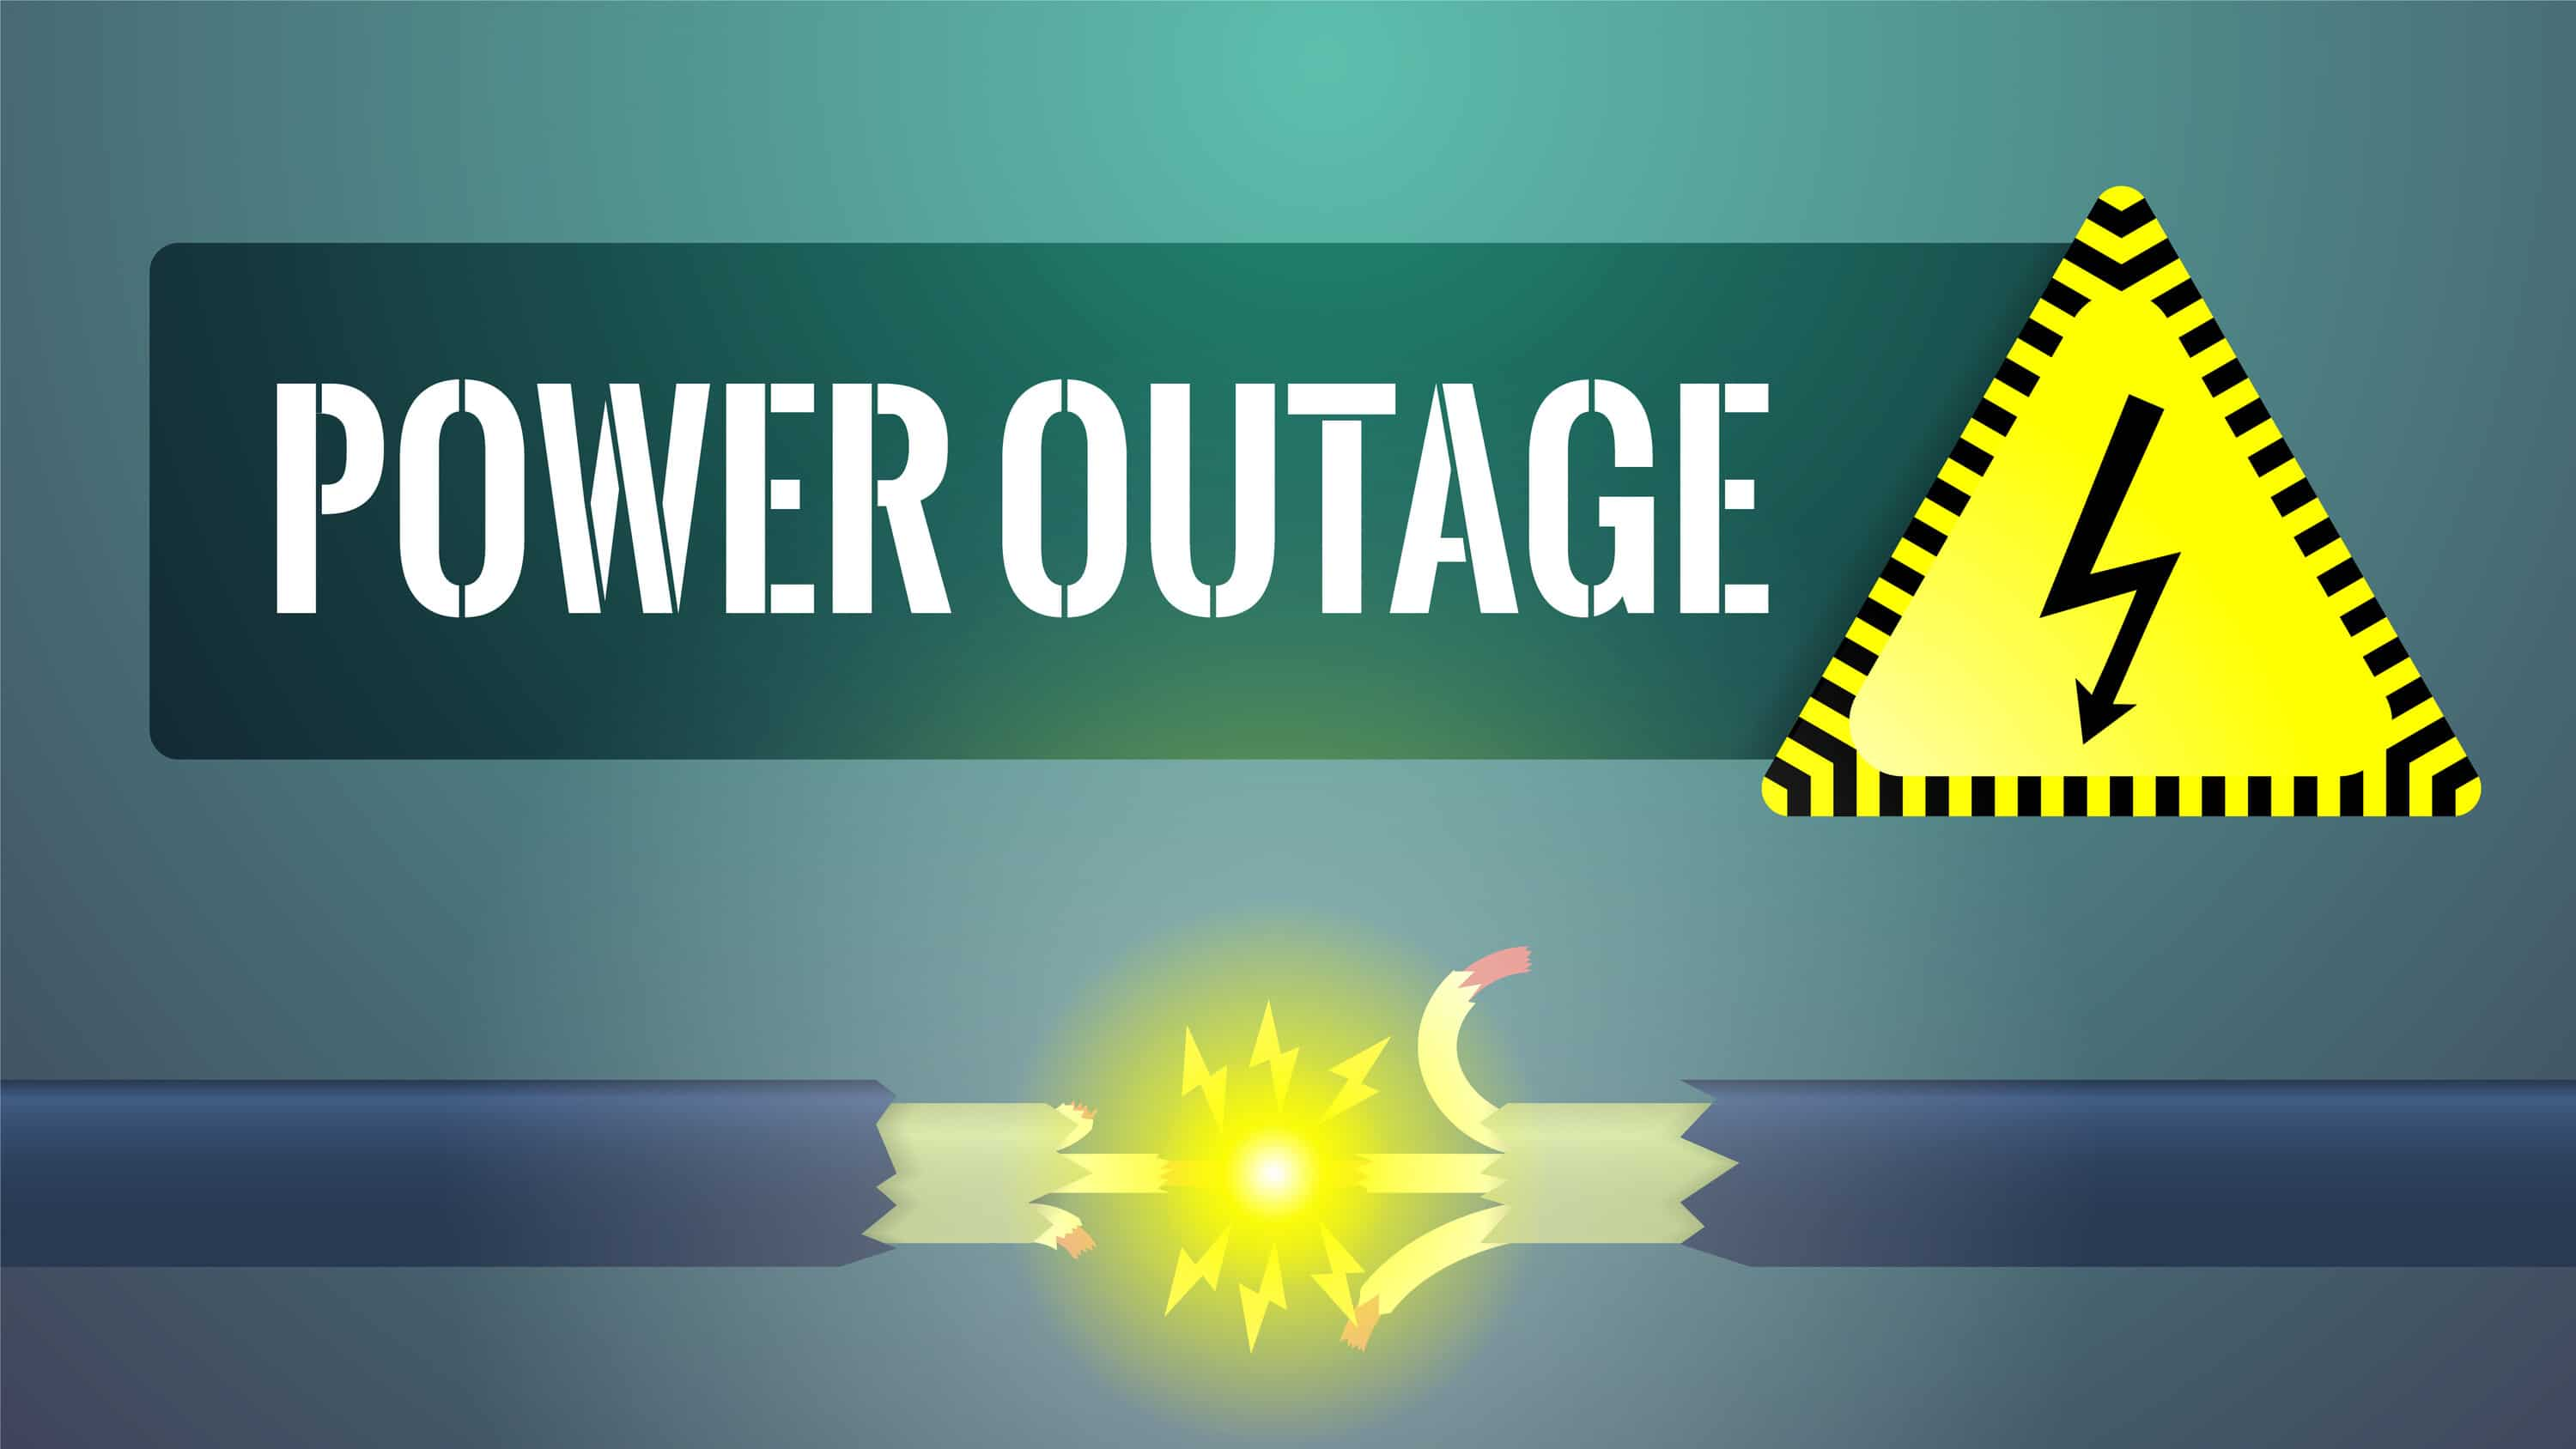 Protect against power outages